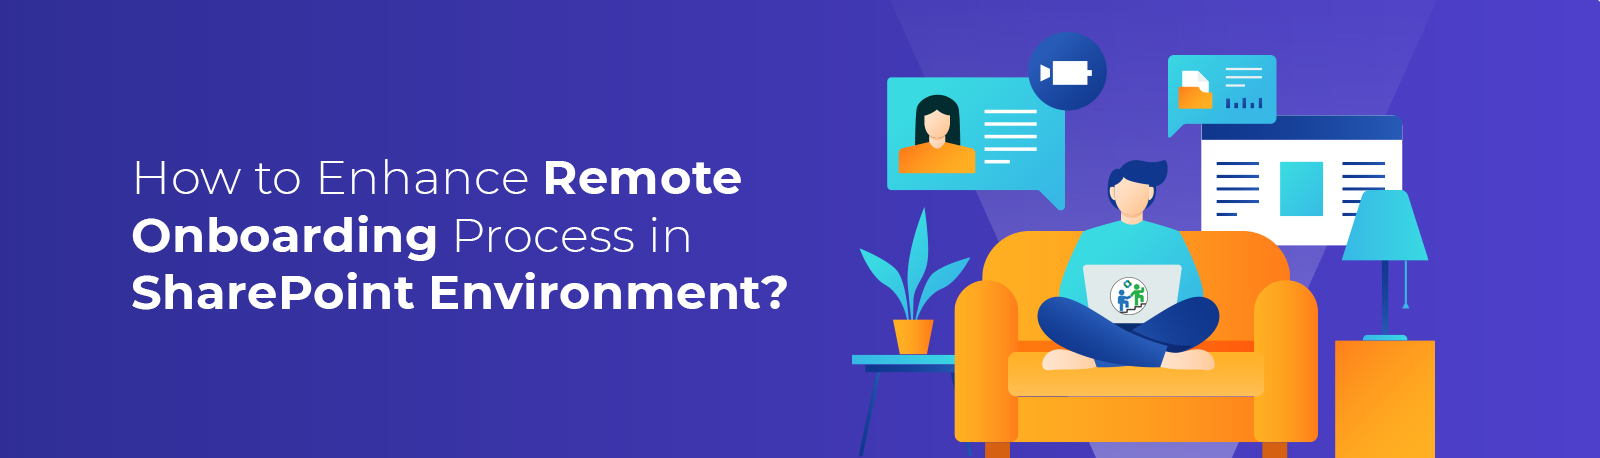 How to Enhance Remote Onboarding Process in SharePoint Environment??